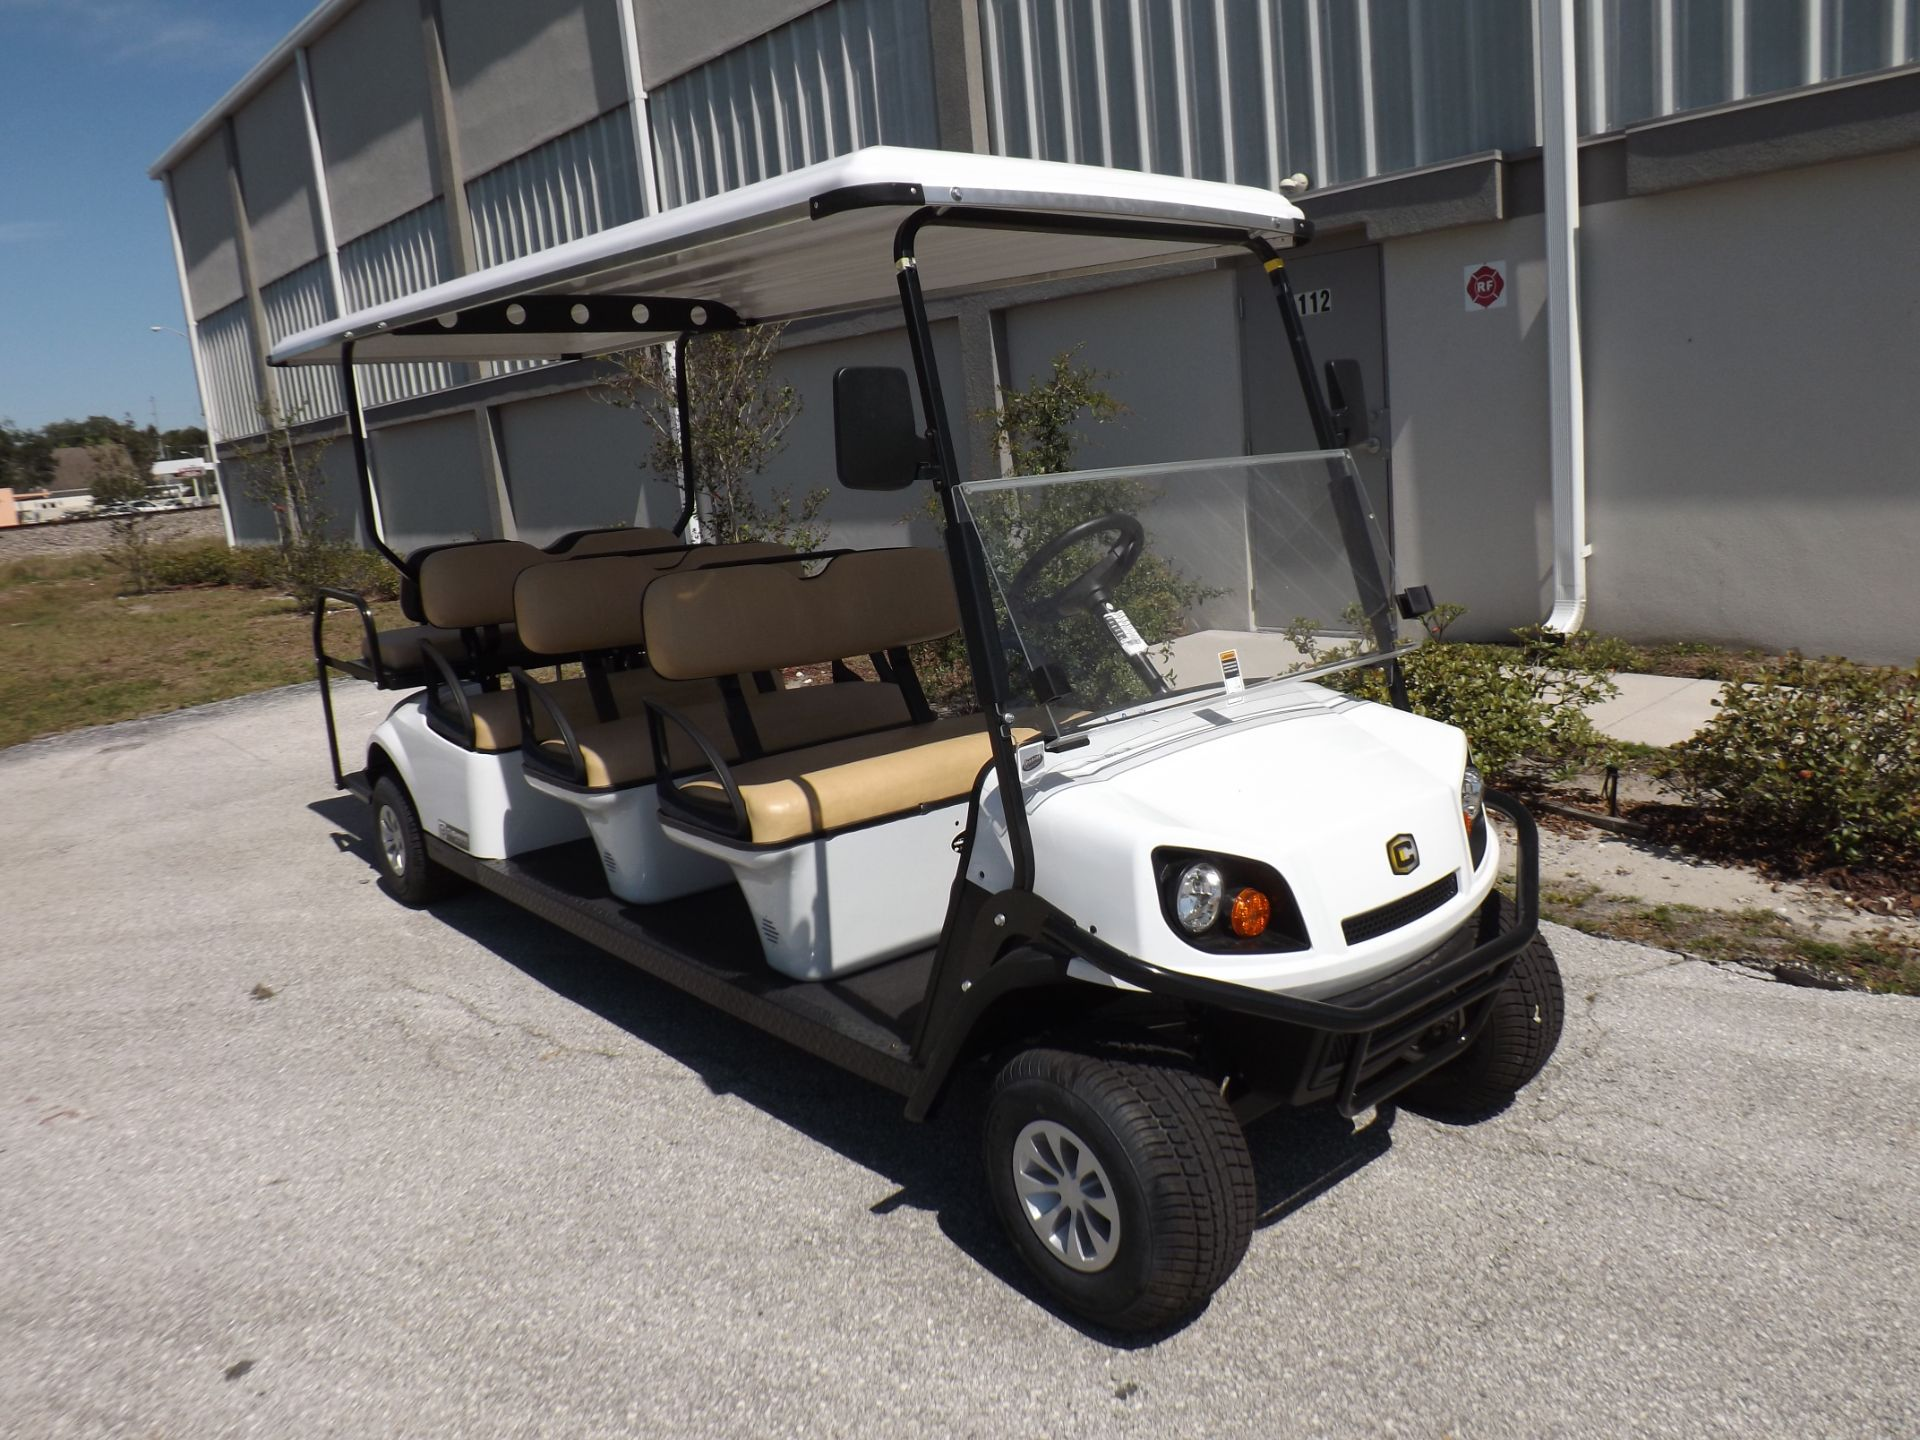 2019 Cushman Shuttle 8 EFI Gas in Lakeland, Florida - Photo 1